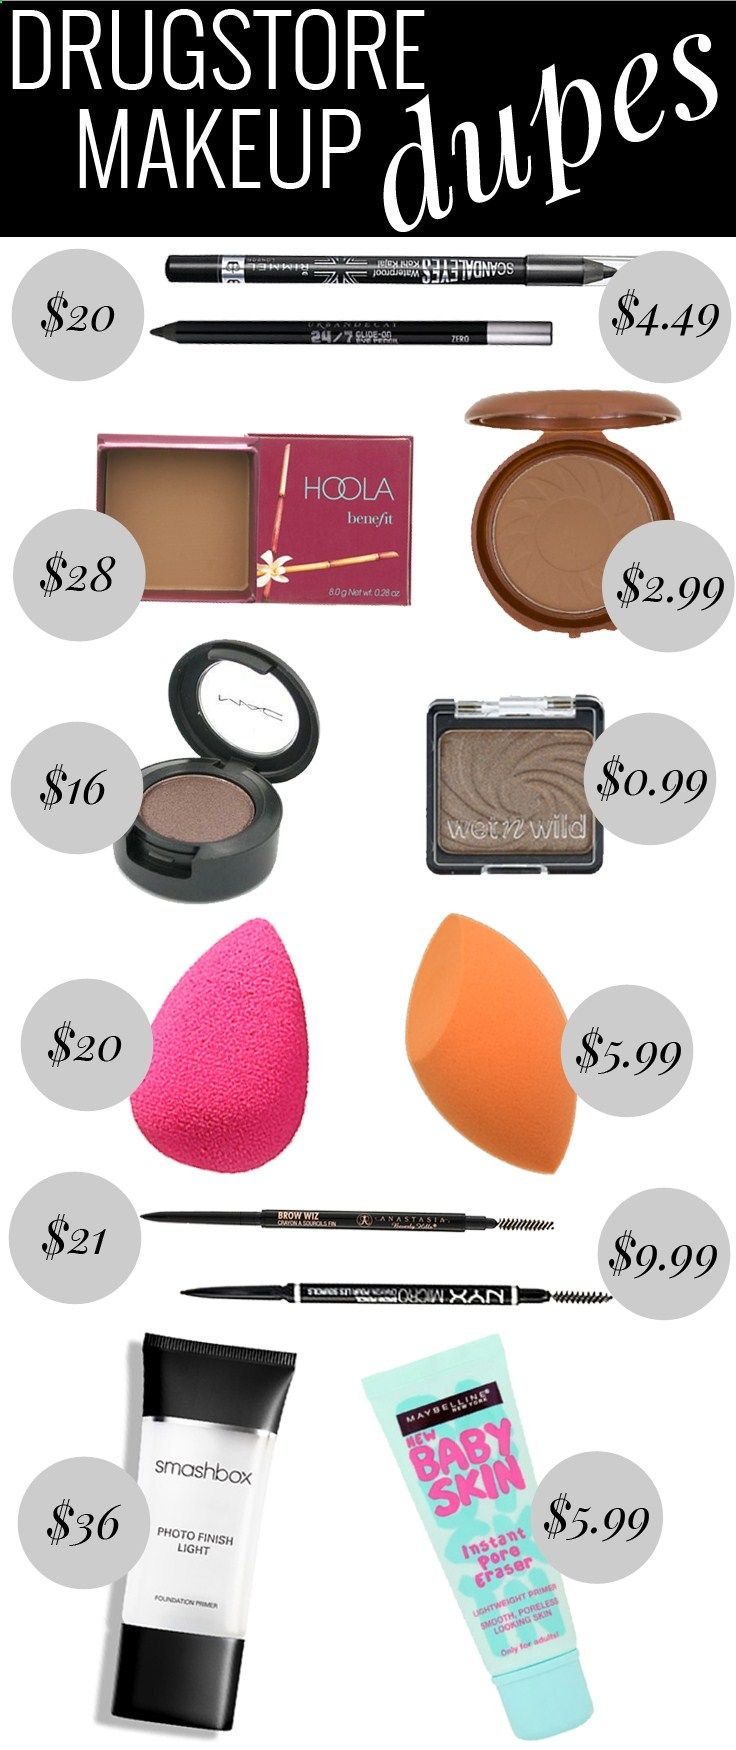 Drugstore Makeup Dupes love me a good dupe!!! products